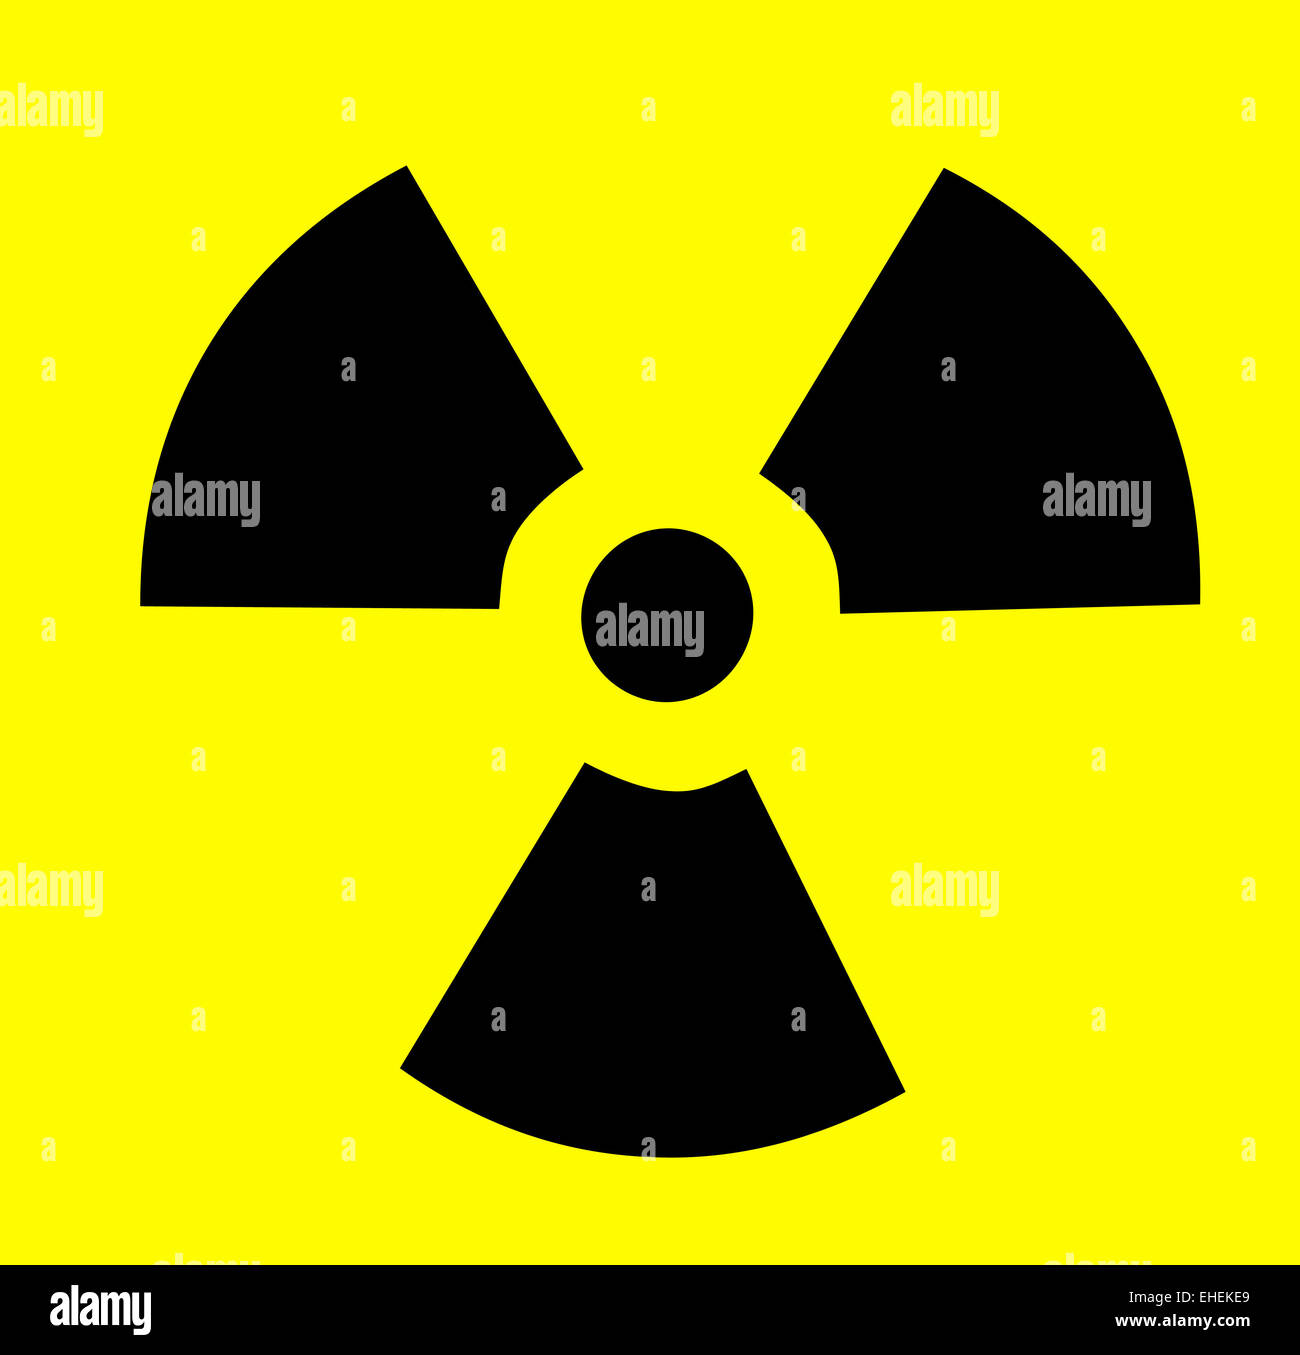 Atomic symbol yellow black Stock Photo: 79613249 - Alamy